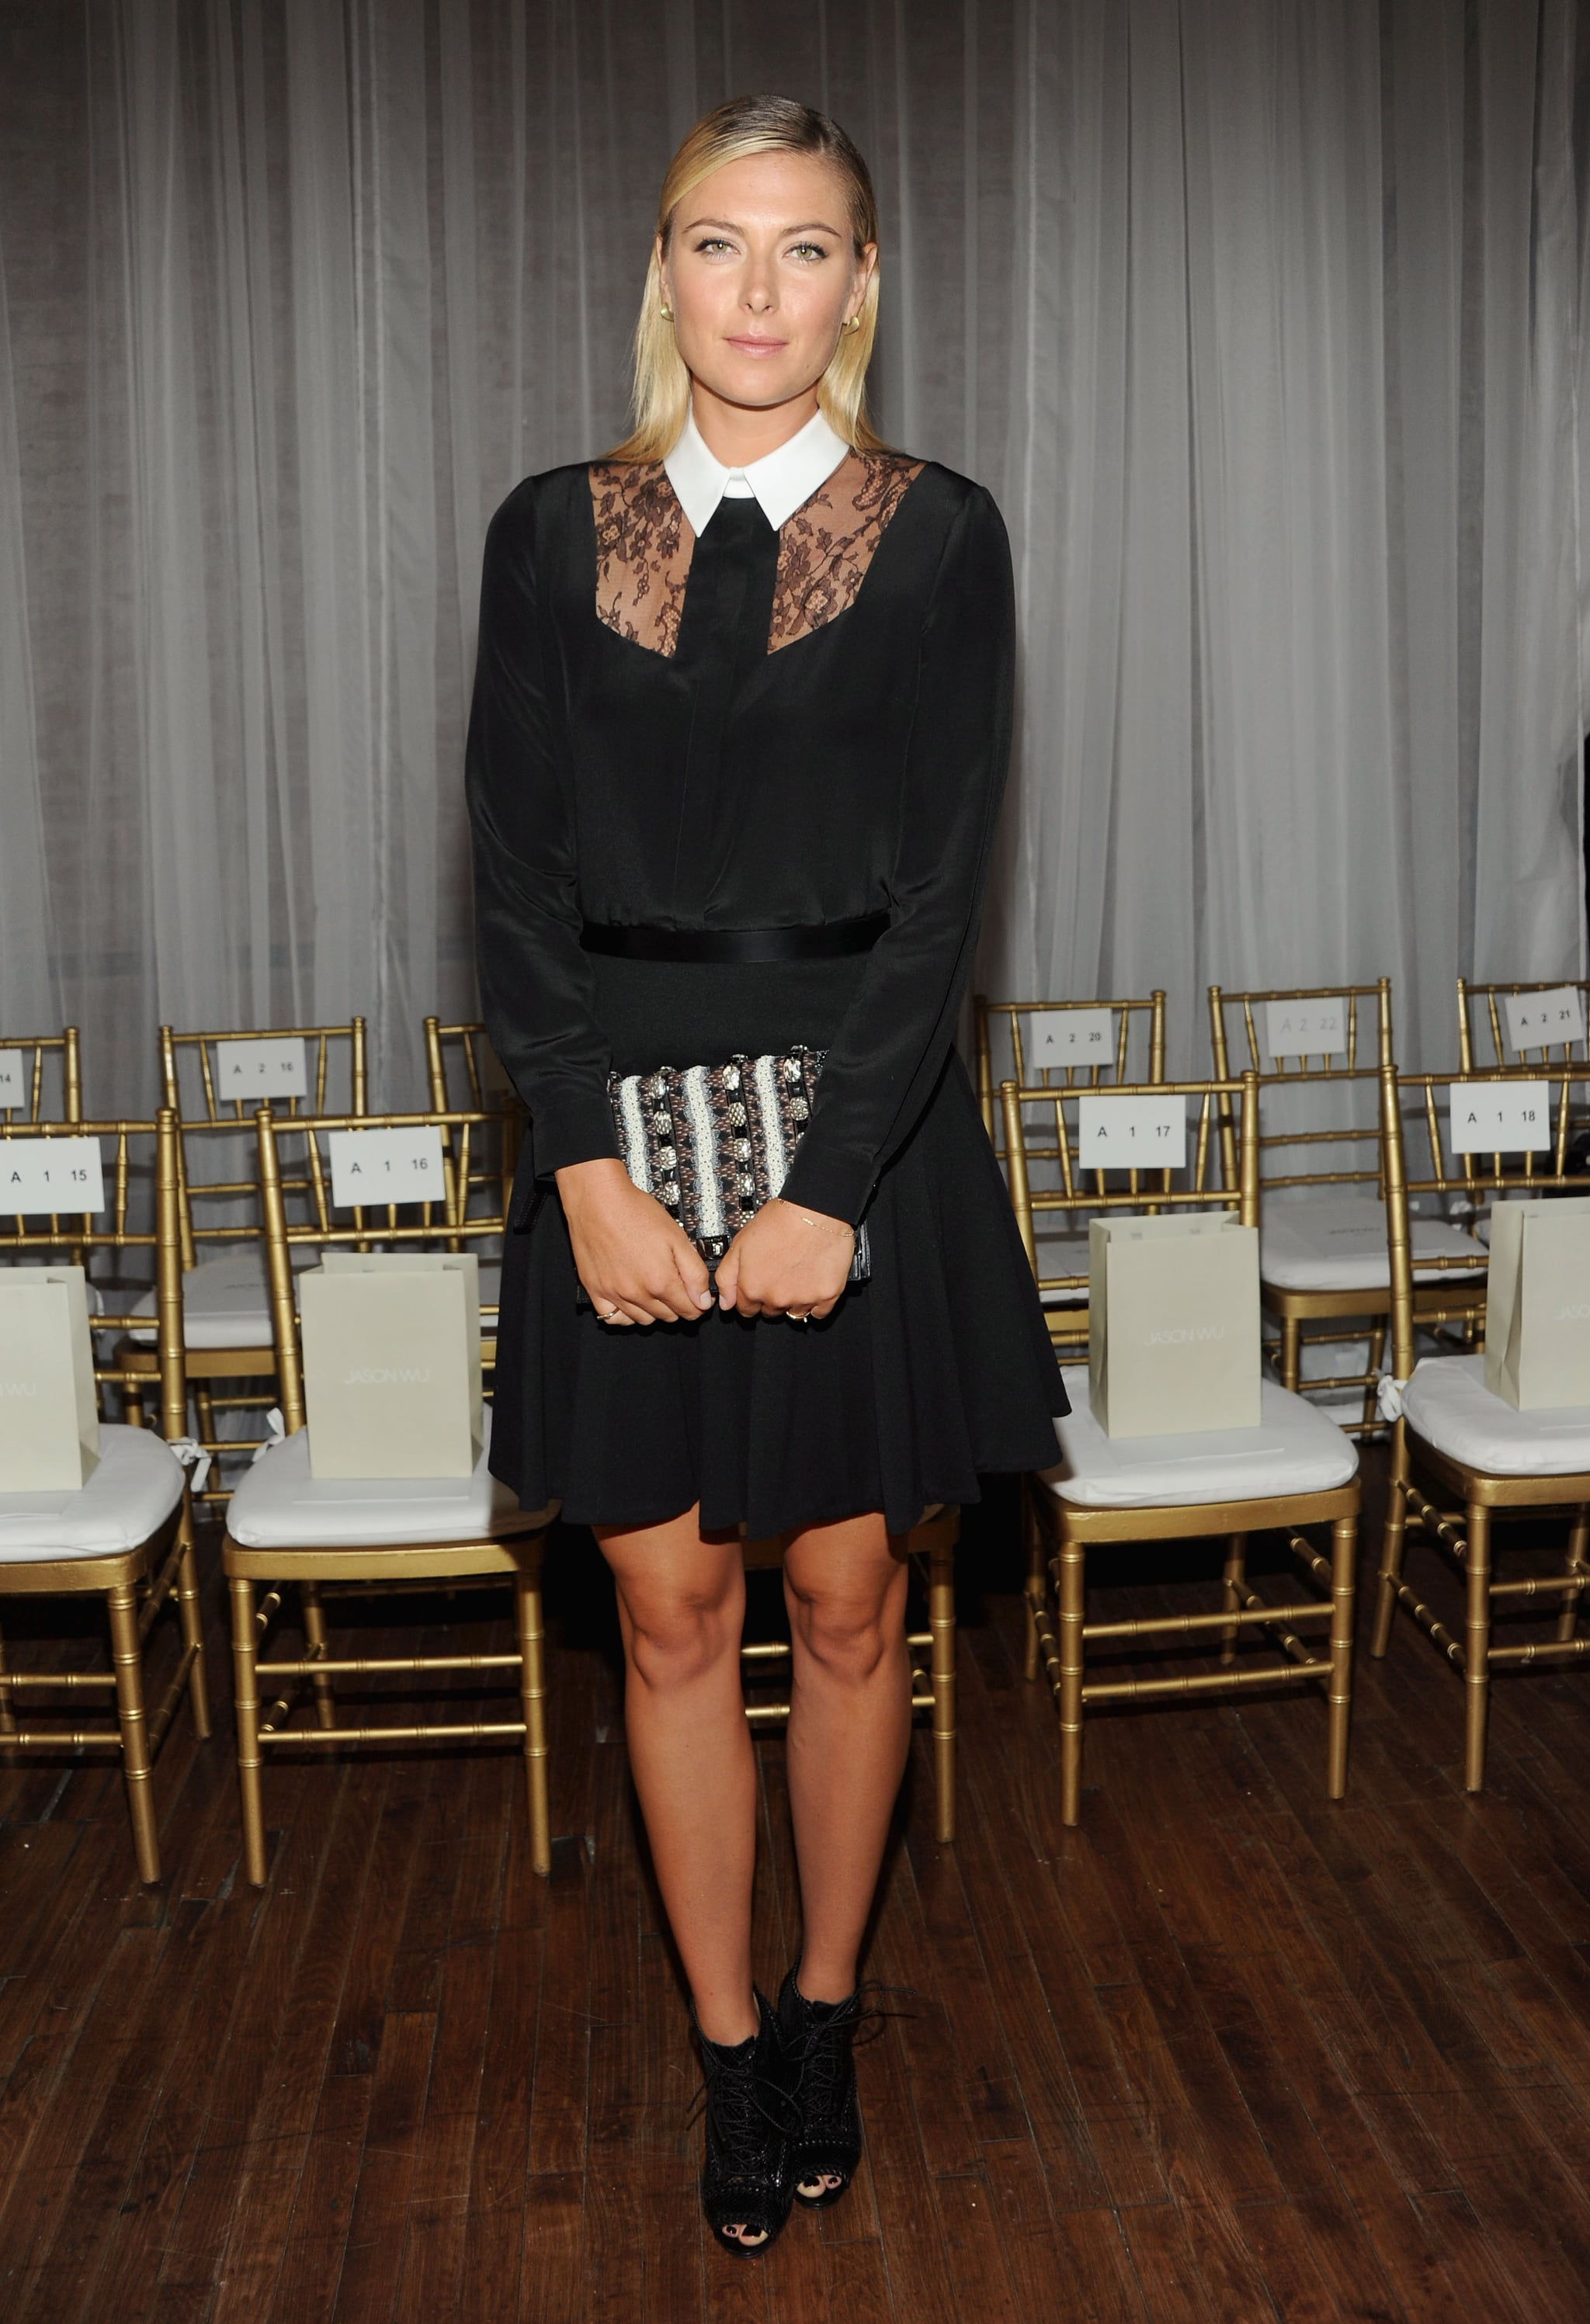 Maria Sharapova was chic in a black lace dress with a white collar at Jason Wu.